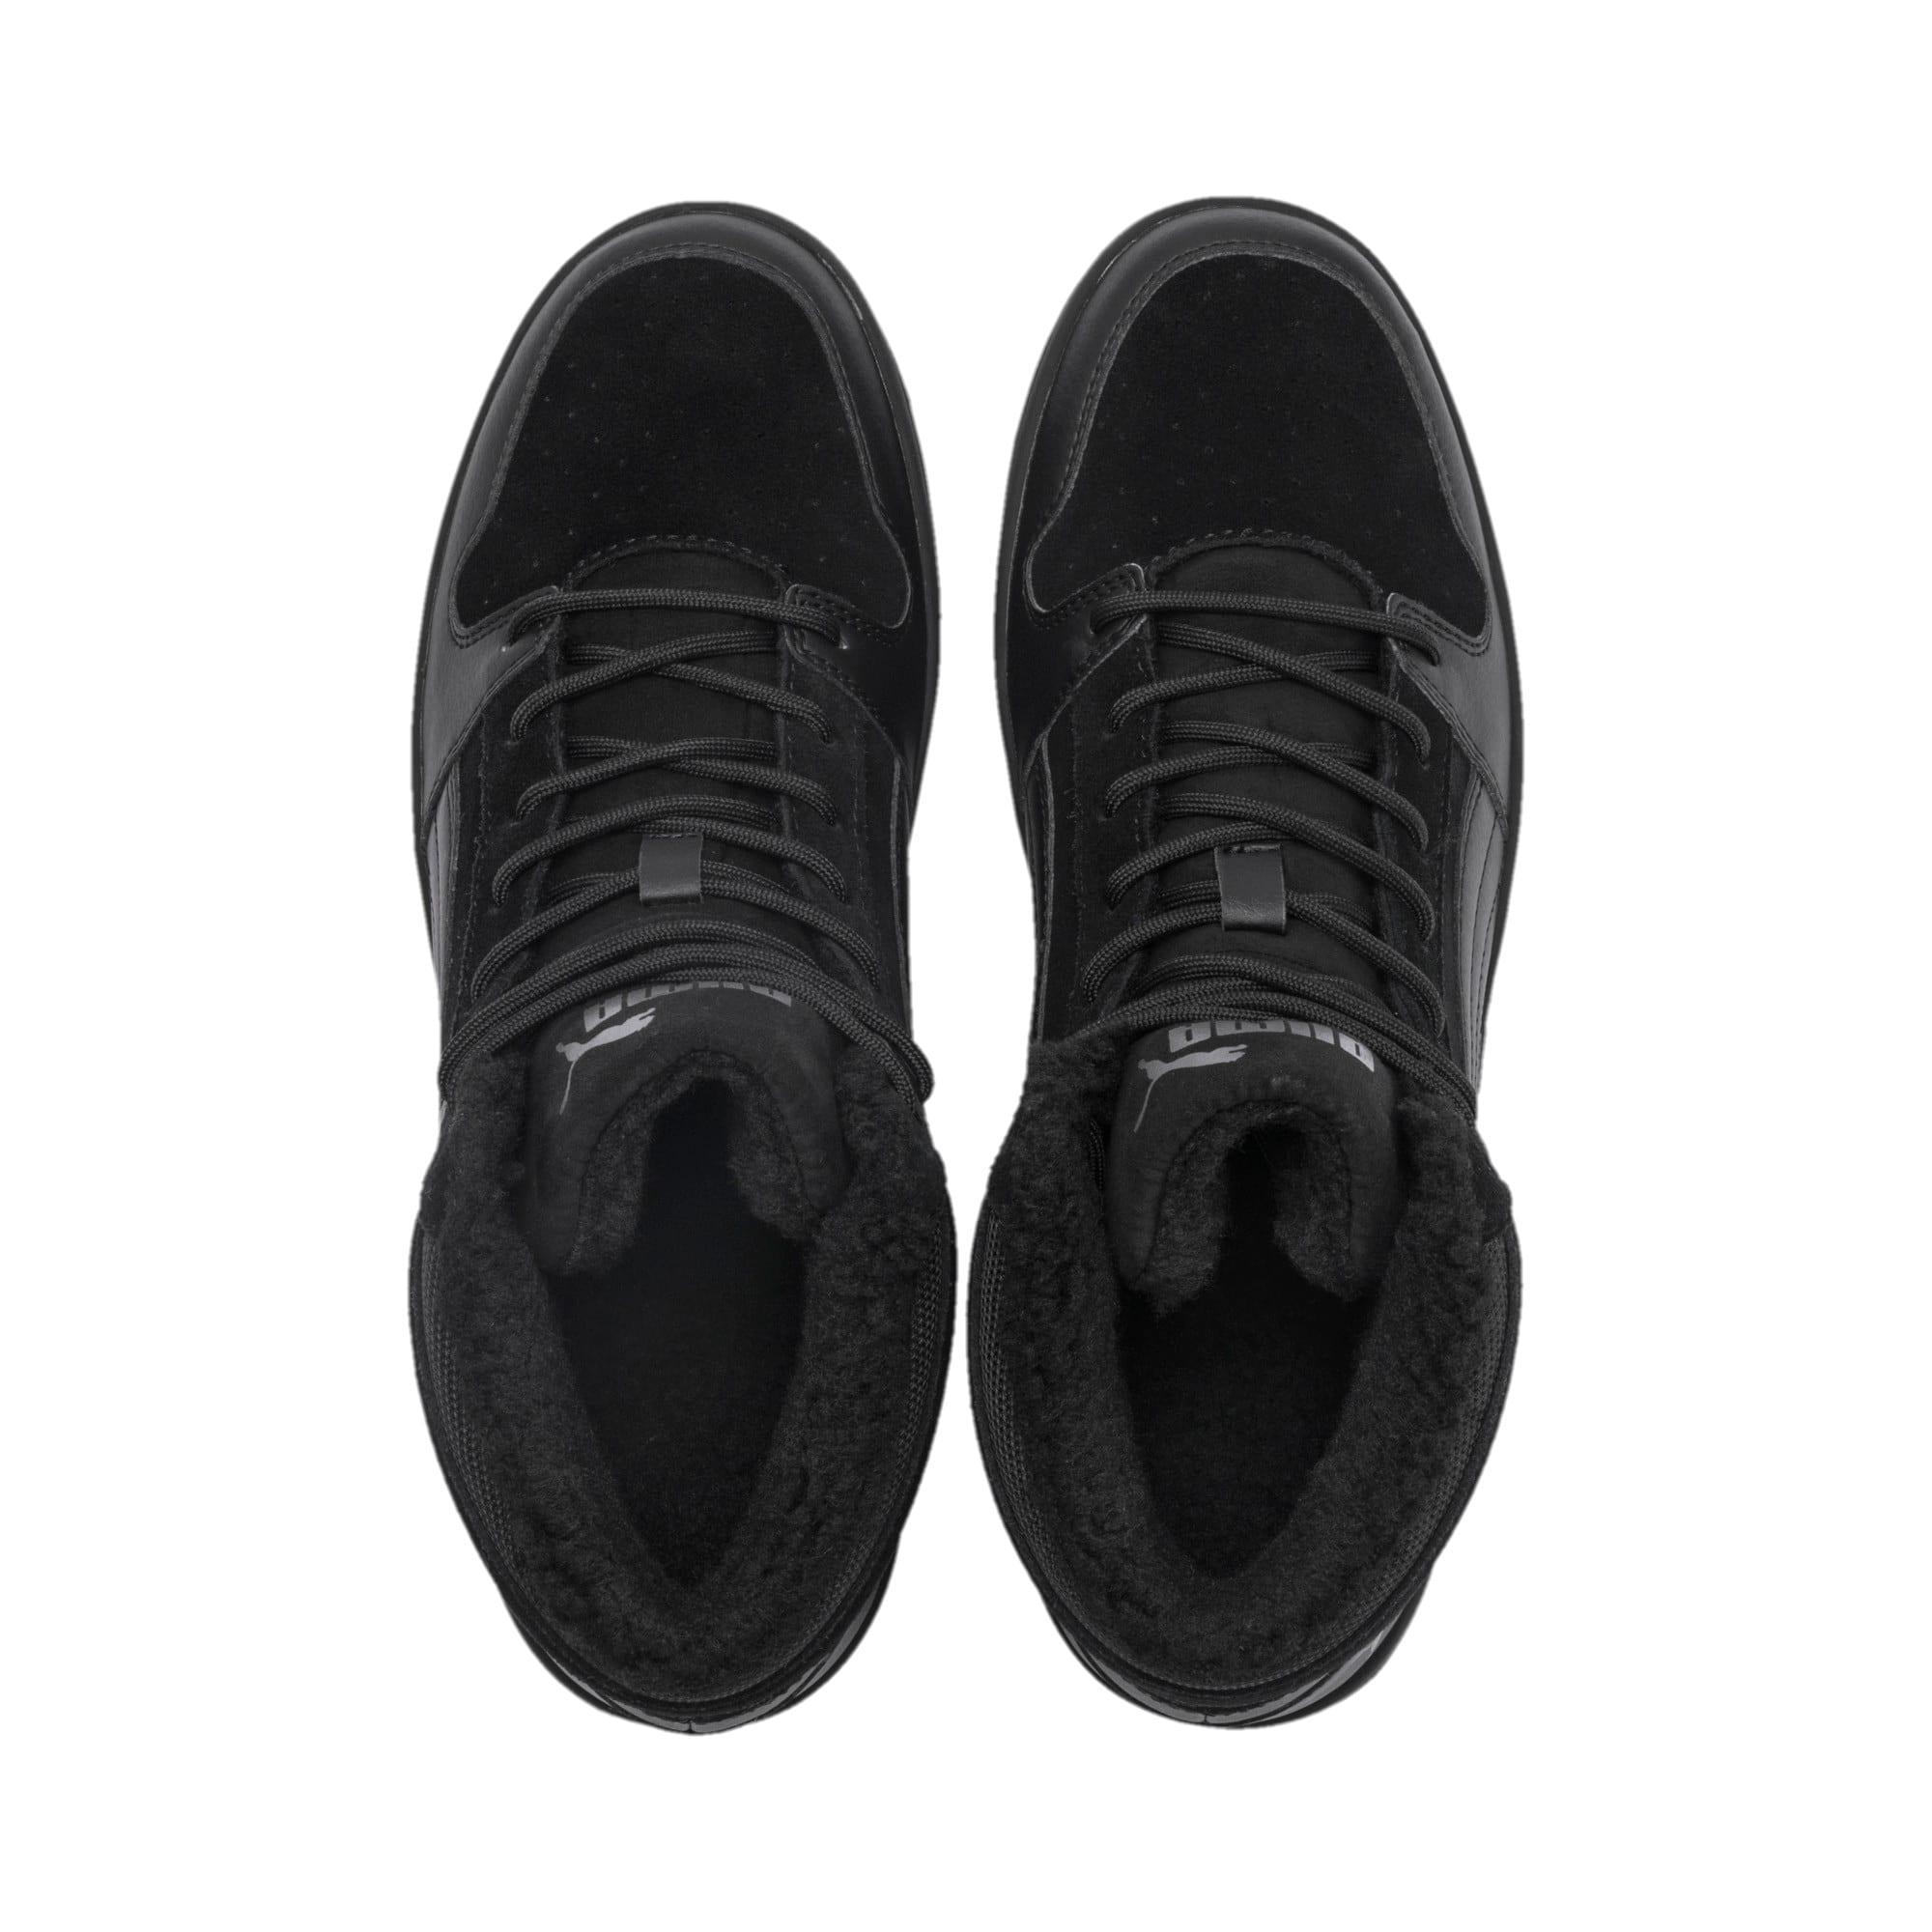 Thumbnail 7 of Rebound Lay Up SD Fur sportschoenen, Puma Black-CASTLEROCK, medium